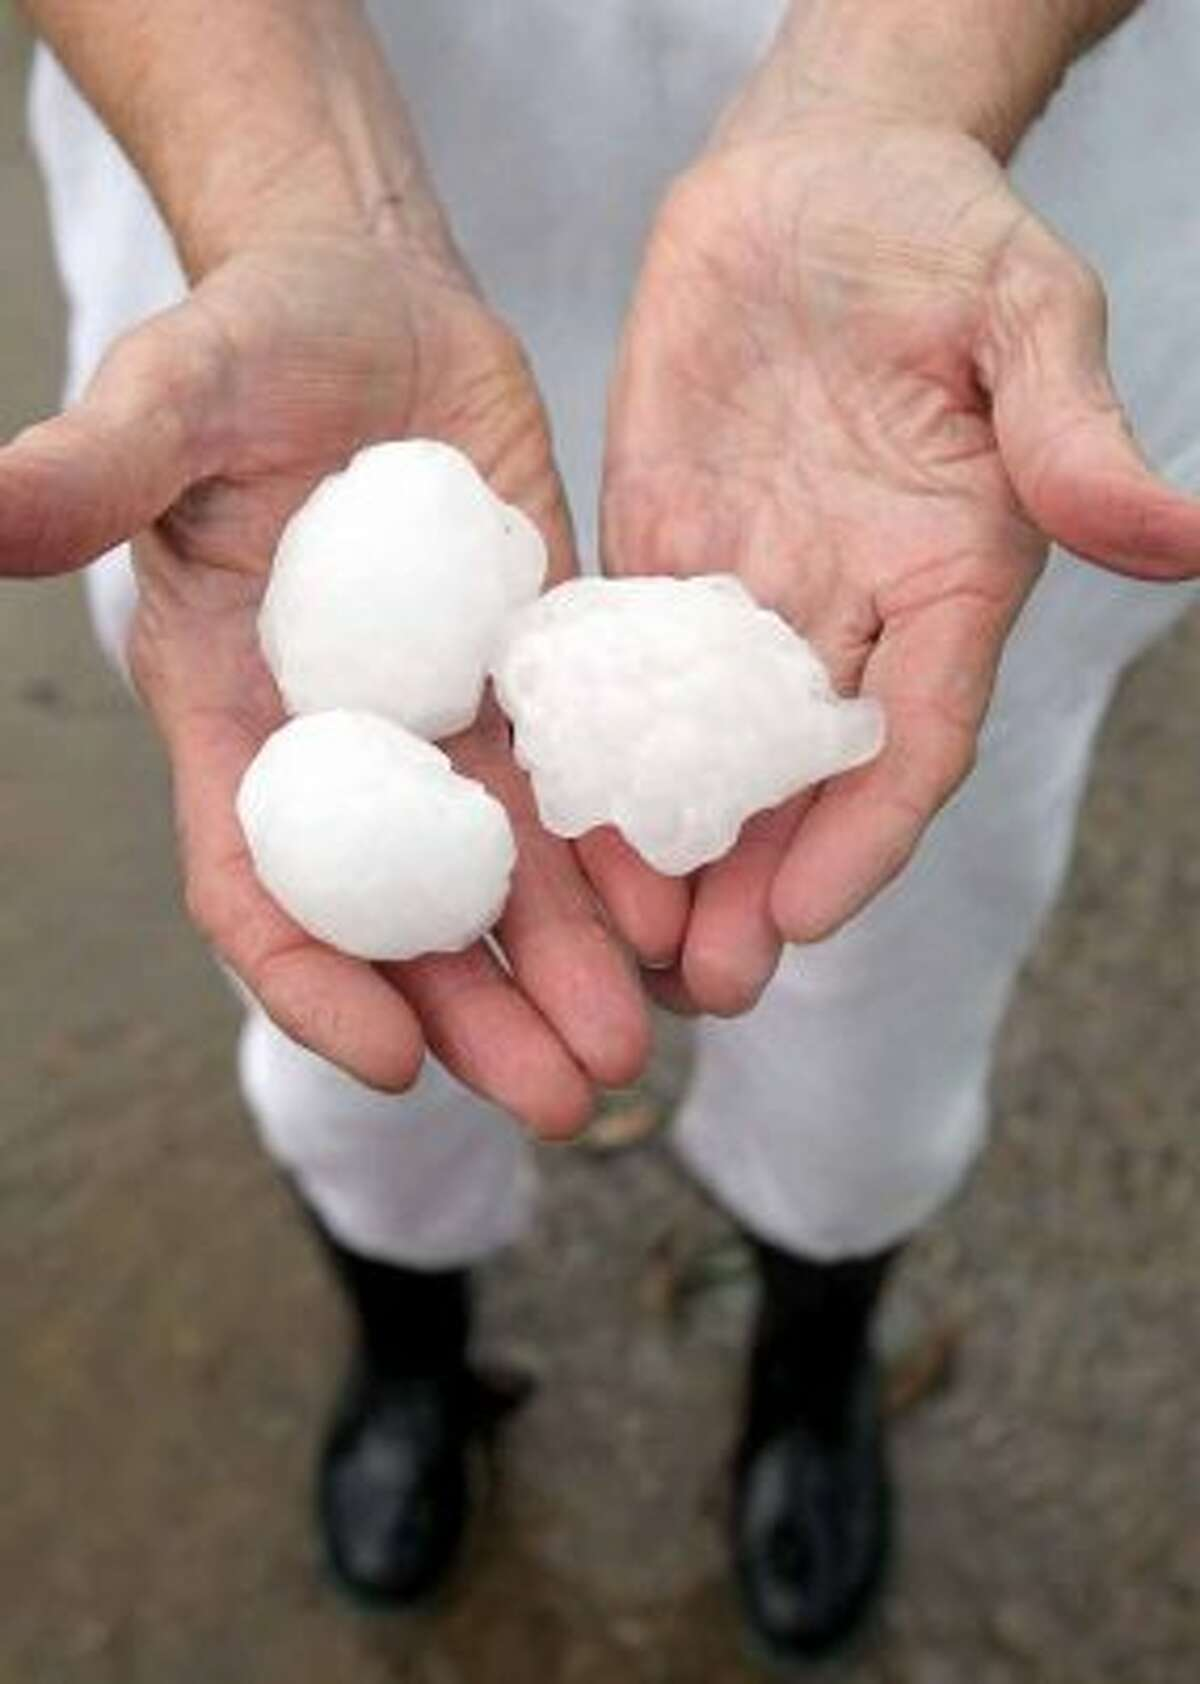 Melba Baker holds some of the golf ball plus size hail that fell at her home in Cunningham, Texas, Tuesday, April 3, 2012. Two large super cell thunderstorms brought heavy rain and damaging winds to North East Texas as well as tornadoes in the Dallas and Fort Woth area. (AP Photo/The Paris News, Sam Craft) (Associated Press)